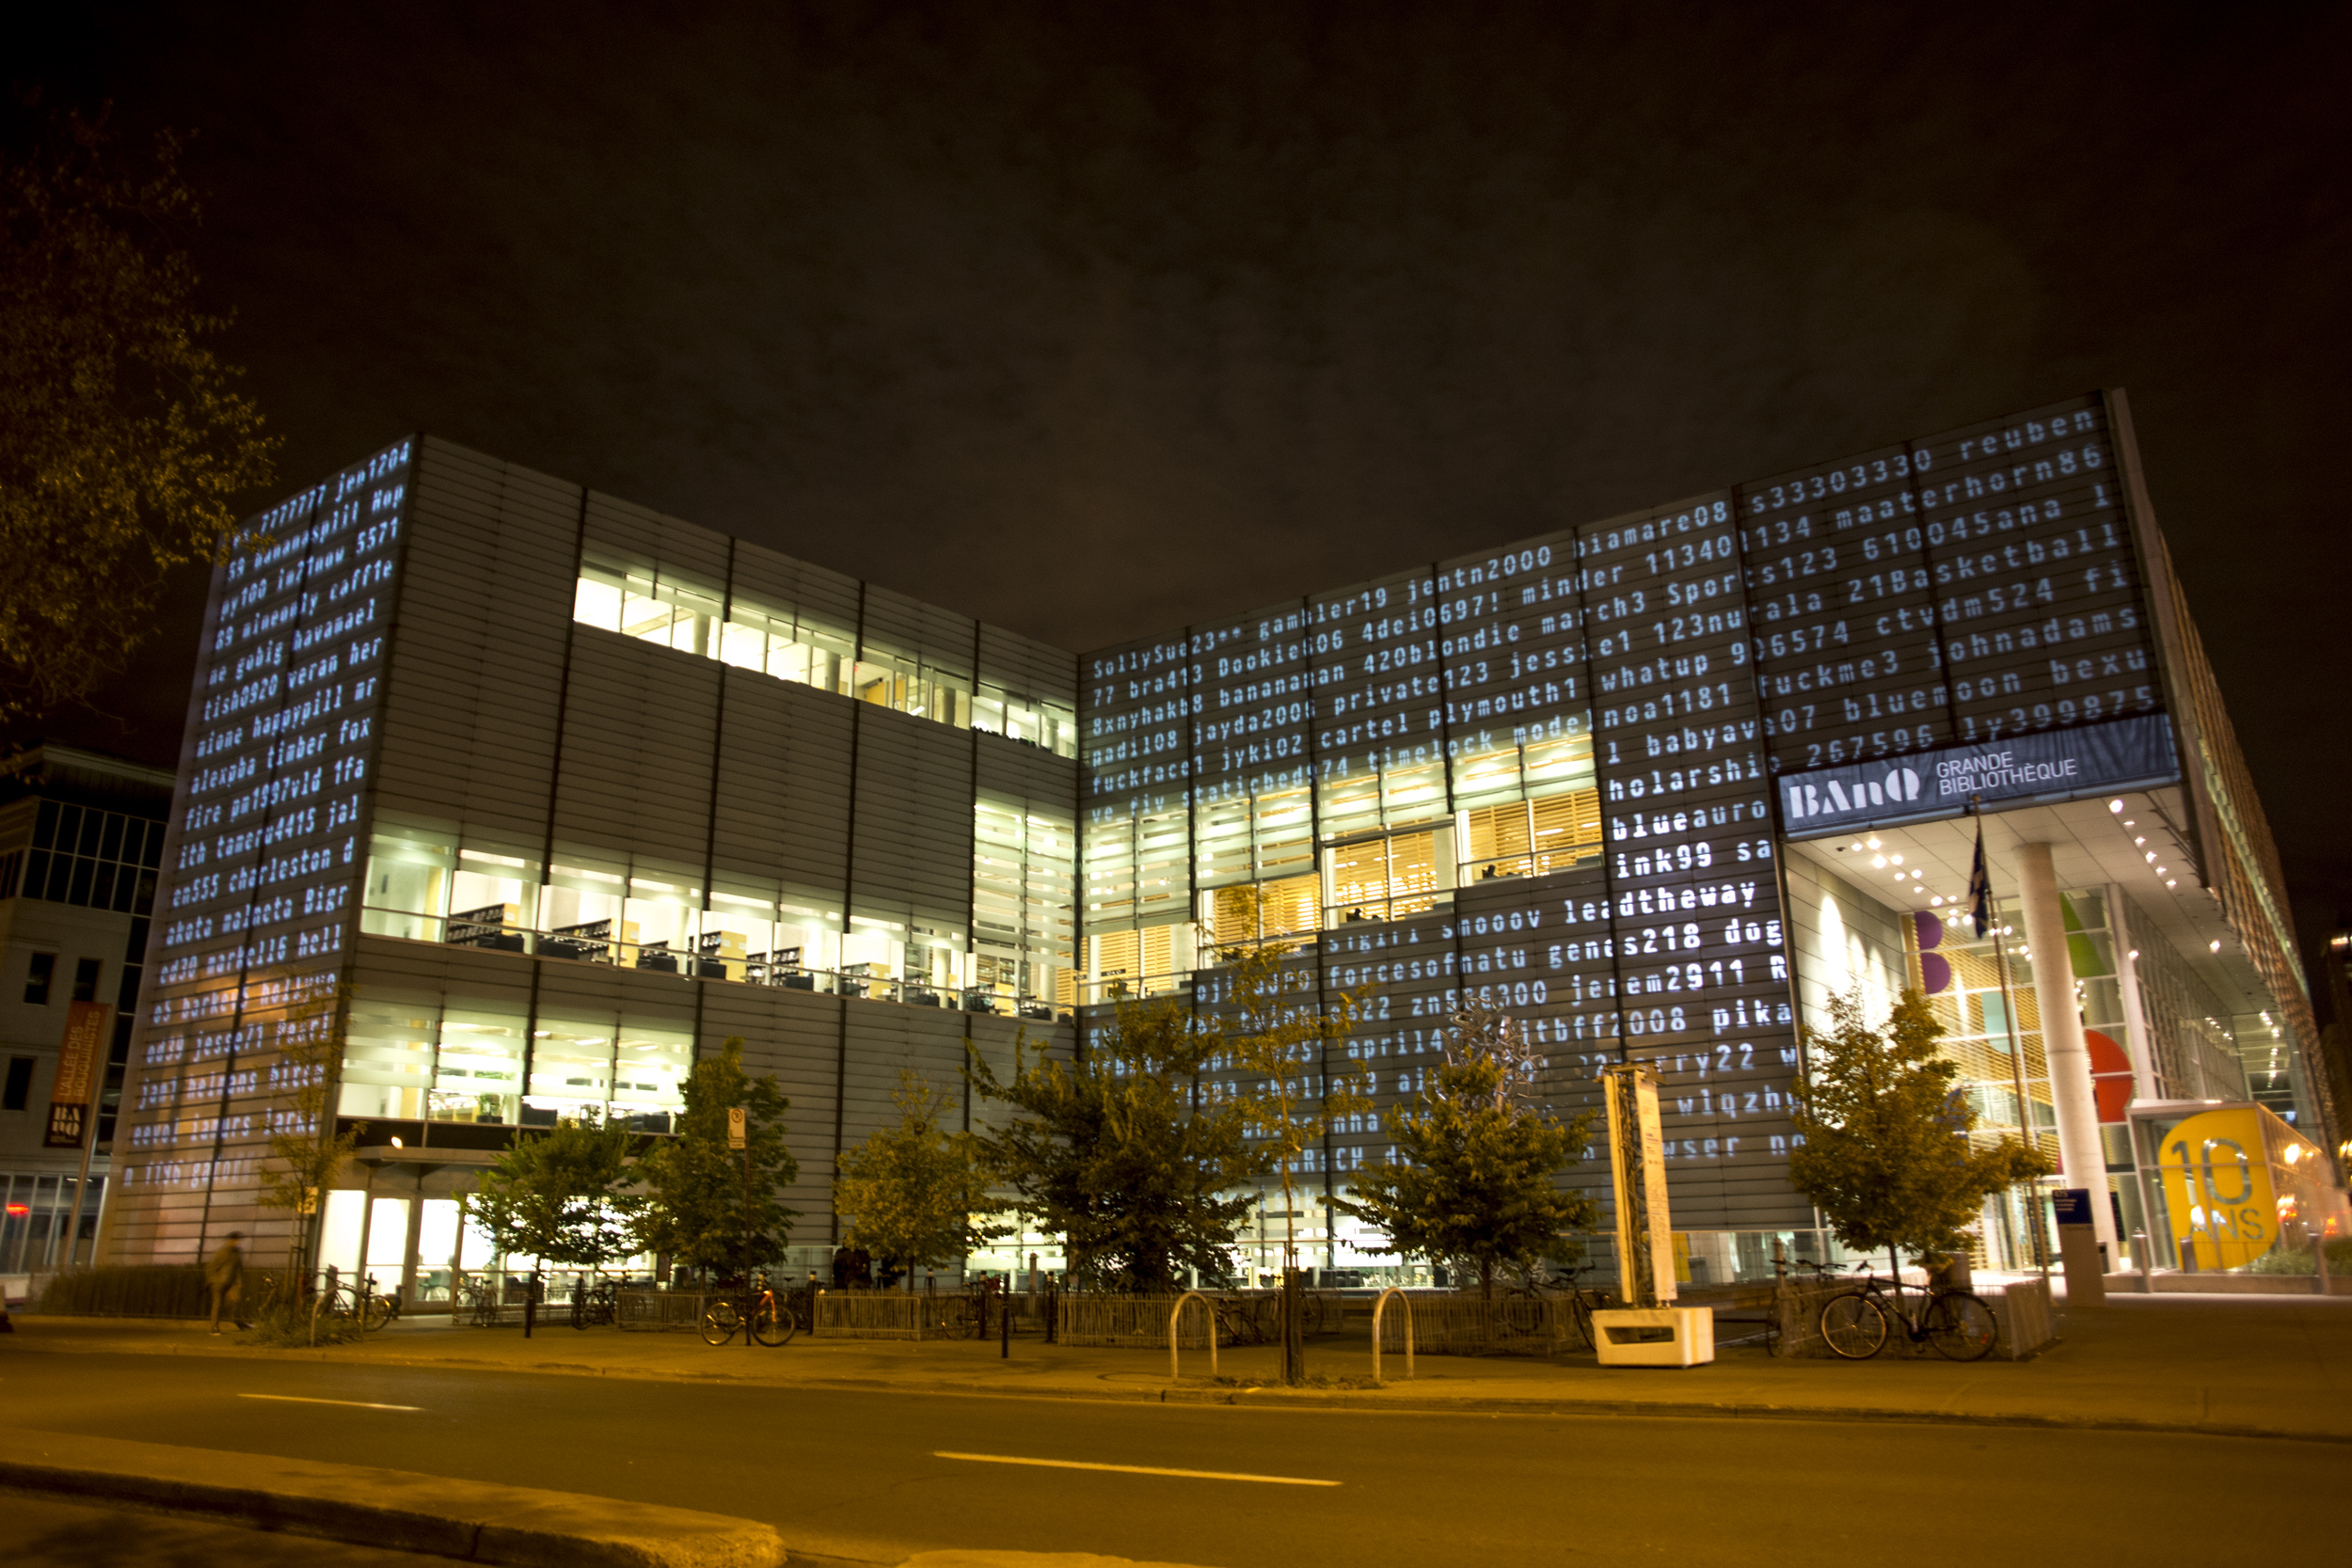 123456-projection-qds-banq-montreal-humanfutures-2